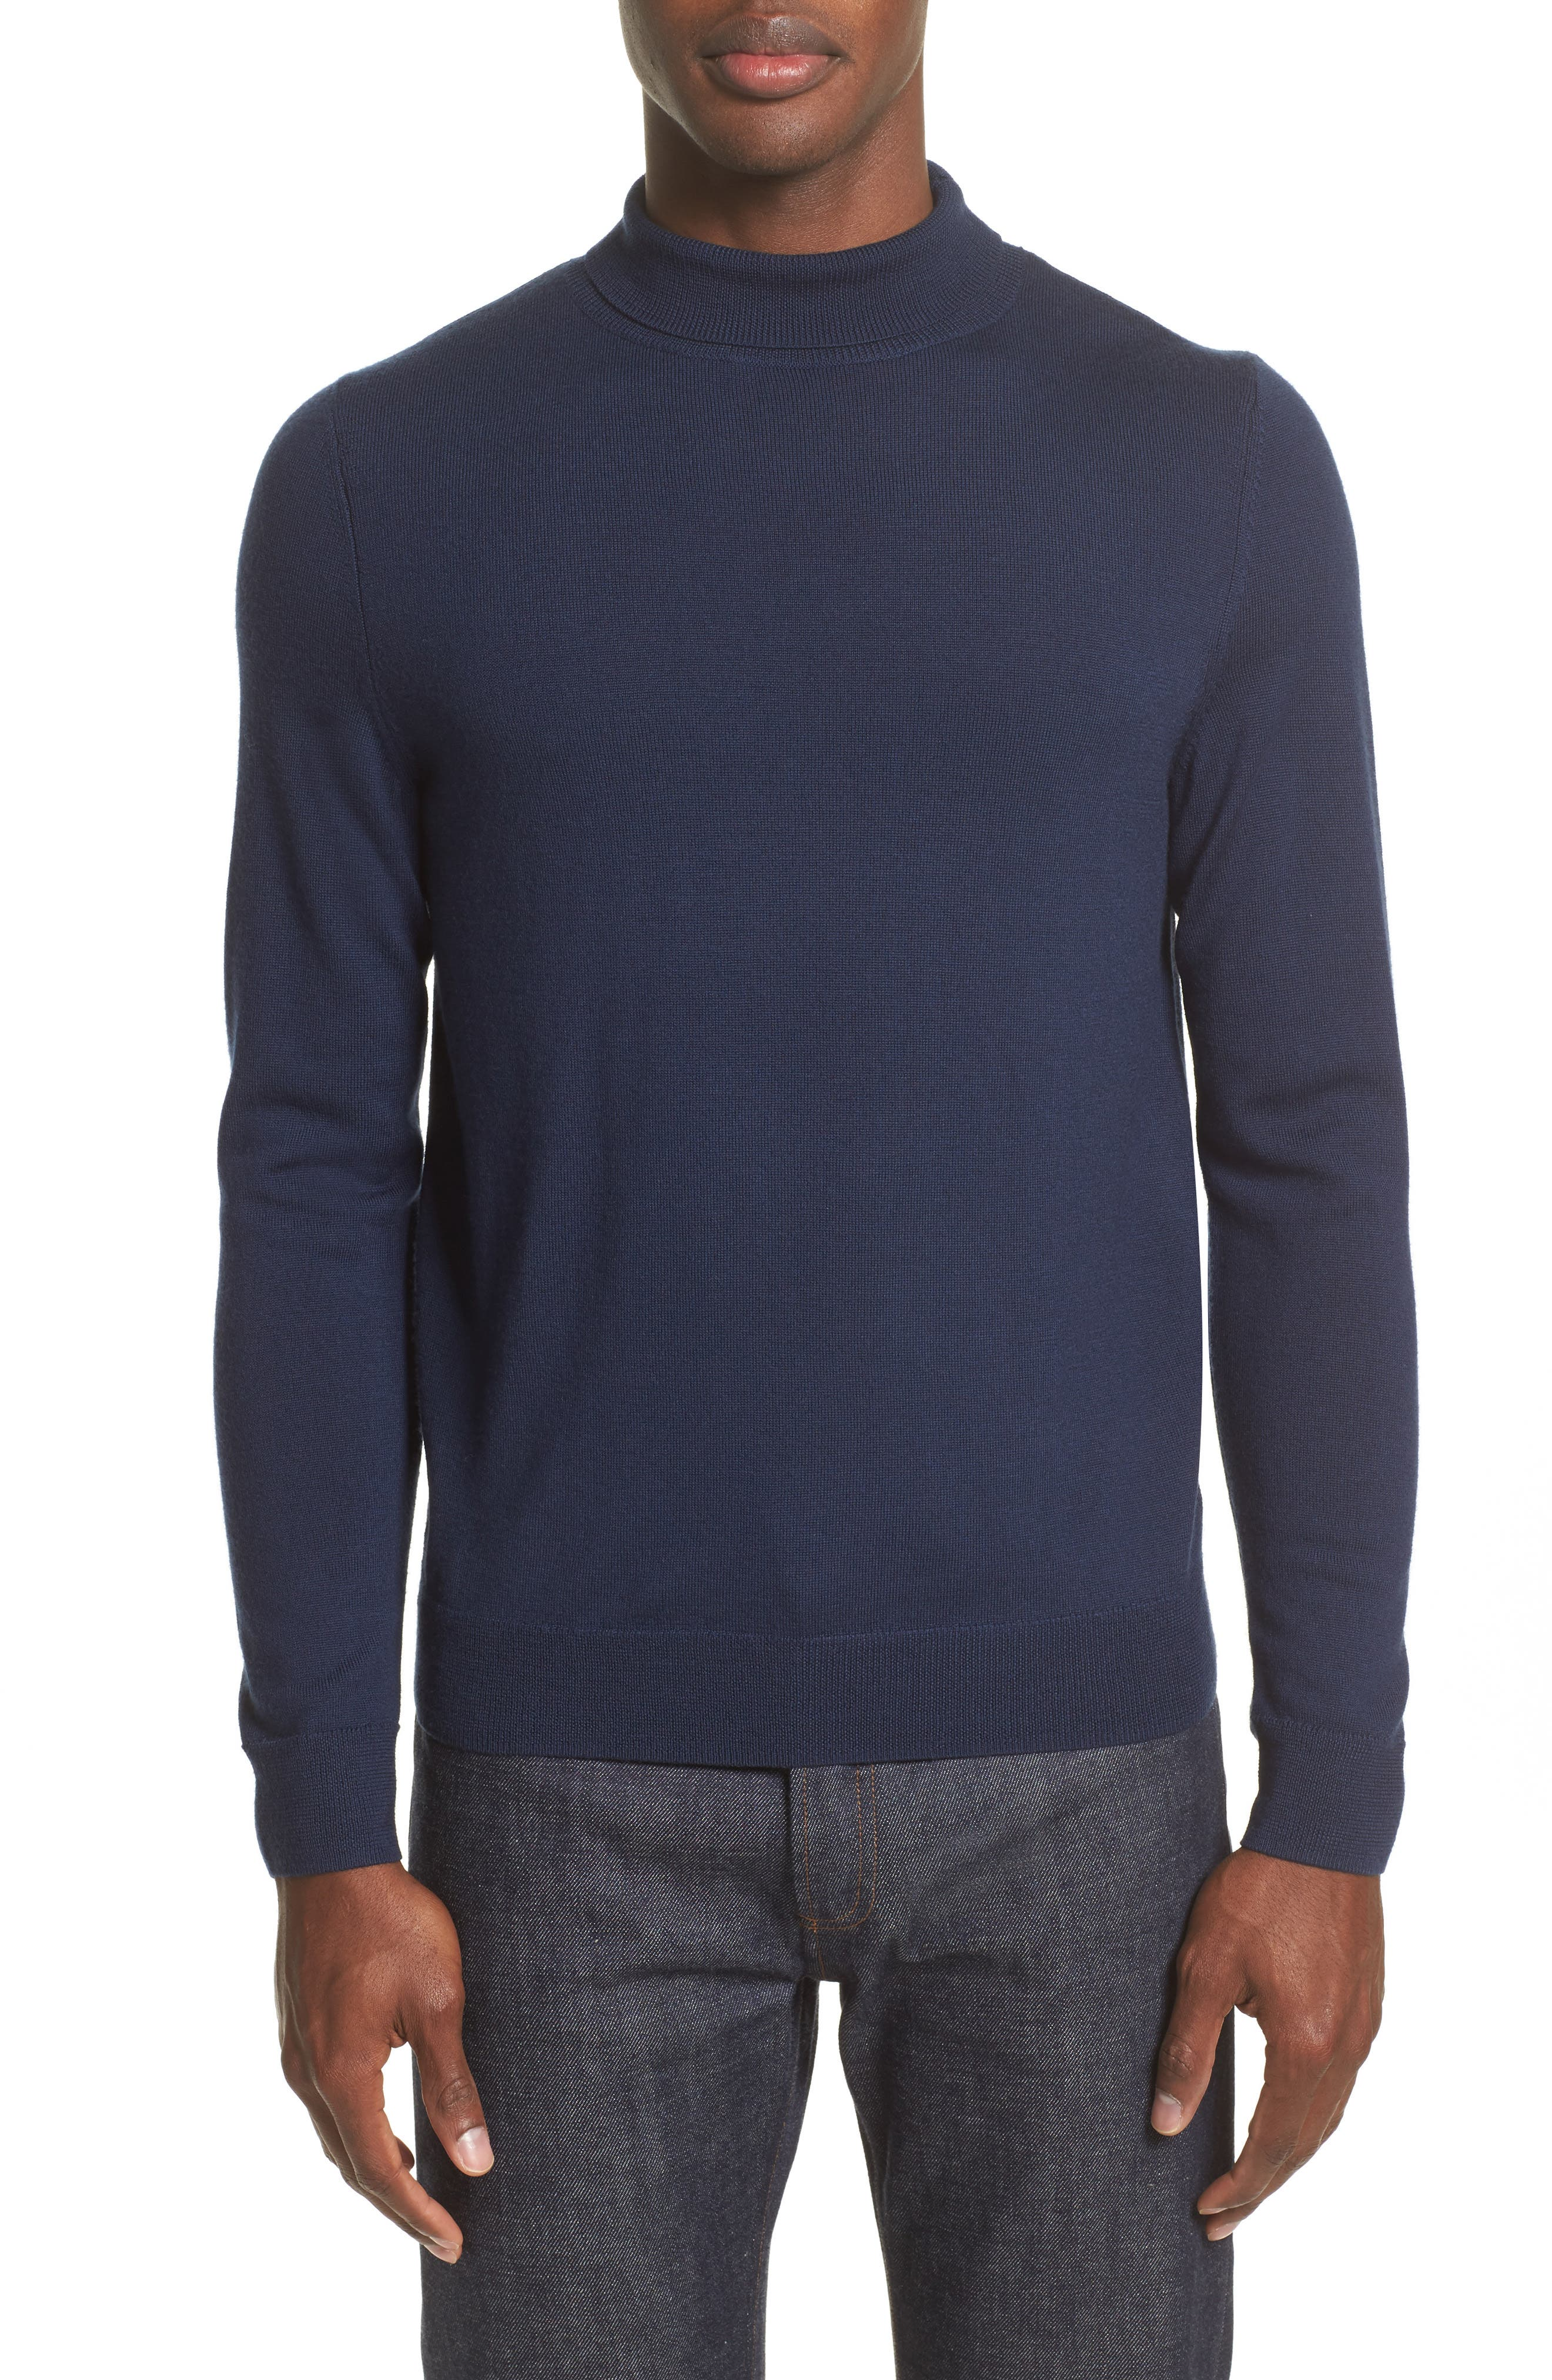 Dundee Mock Neck Sweater,                         Main,                         color, Marine